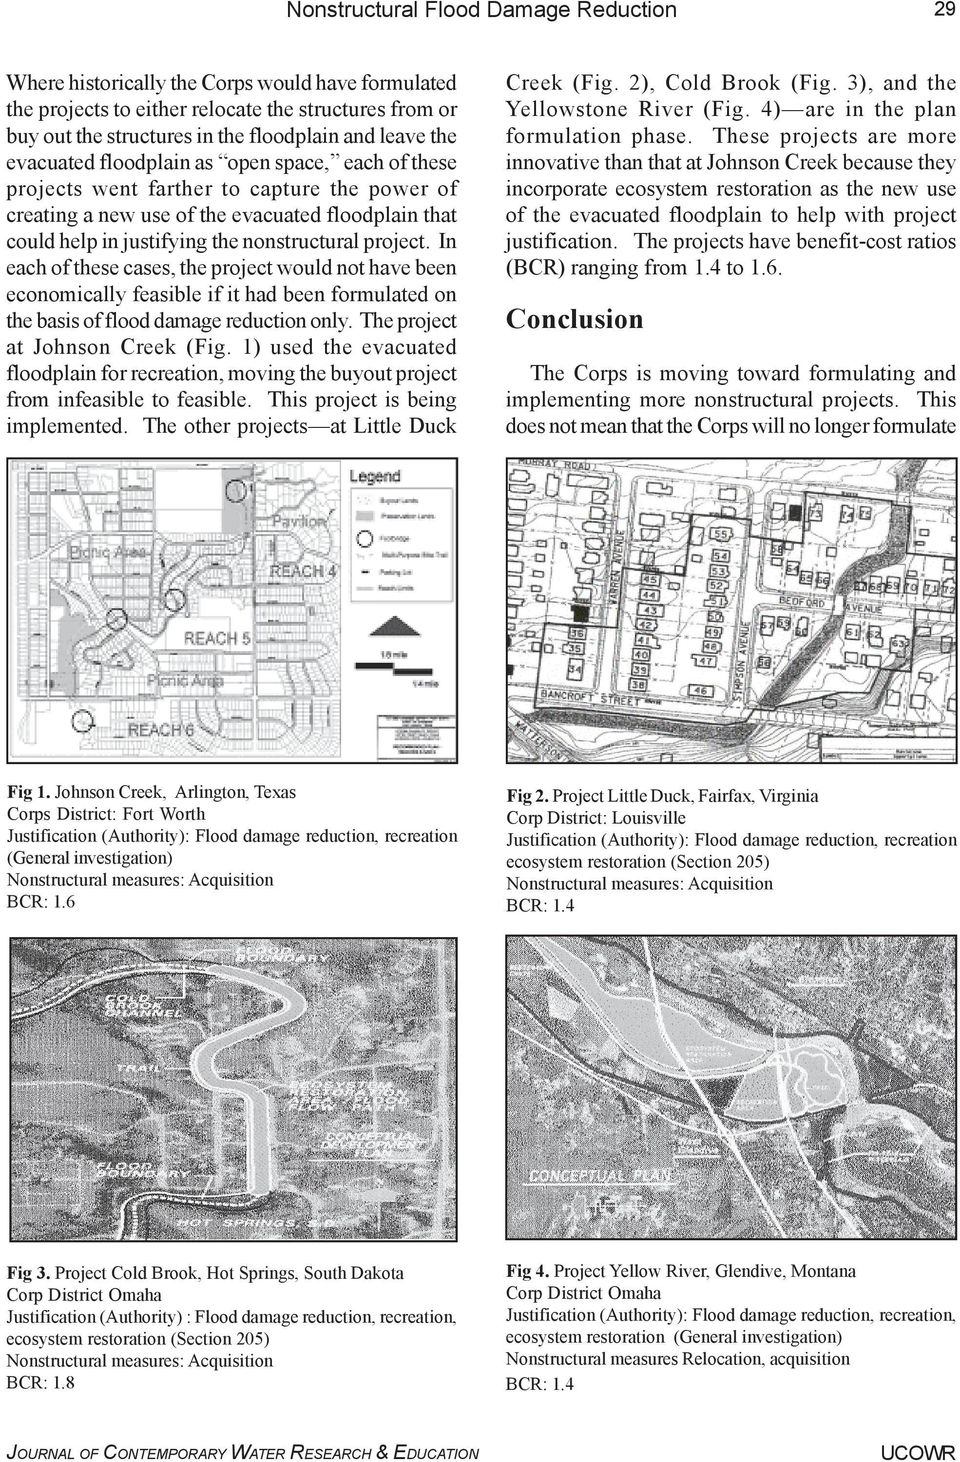 project. In each of these cases, the project would not have been economically feasible if it had been formulated on the basis of flood damage reduction only. The project at Johnson Creek (Fig.